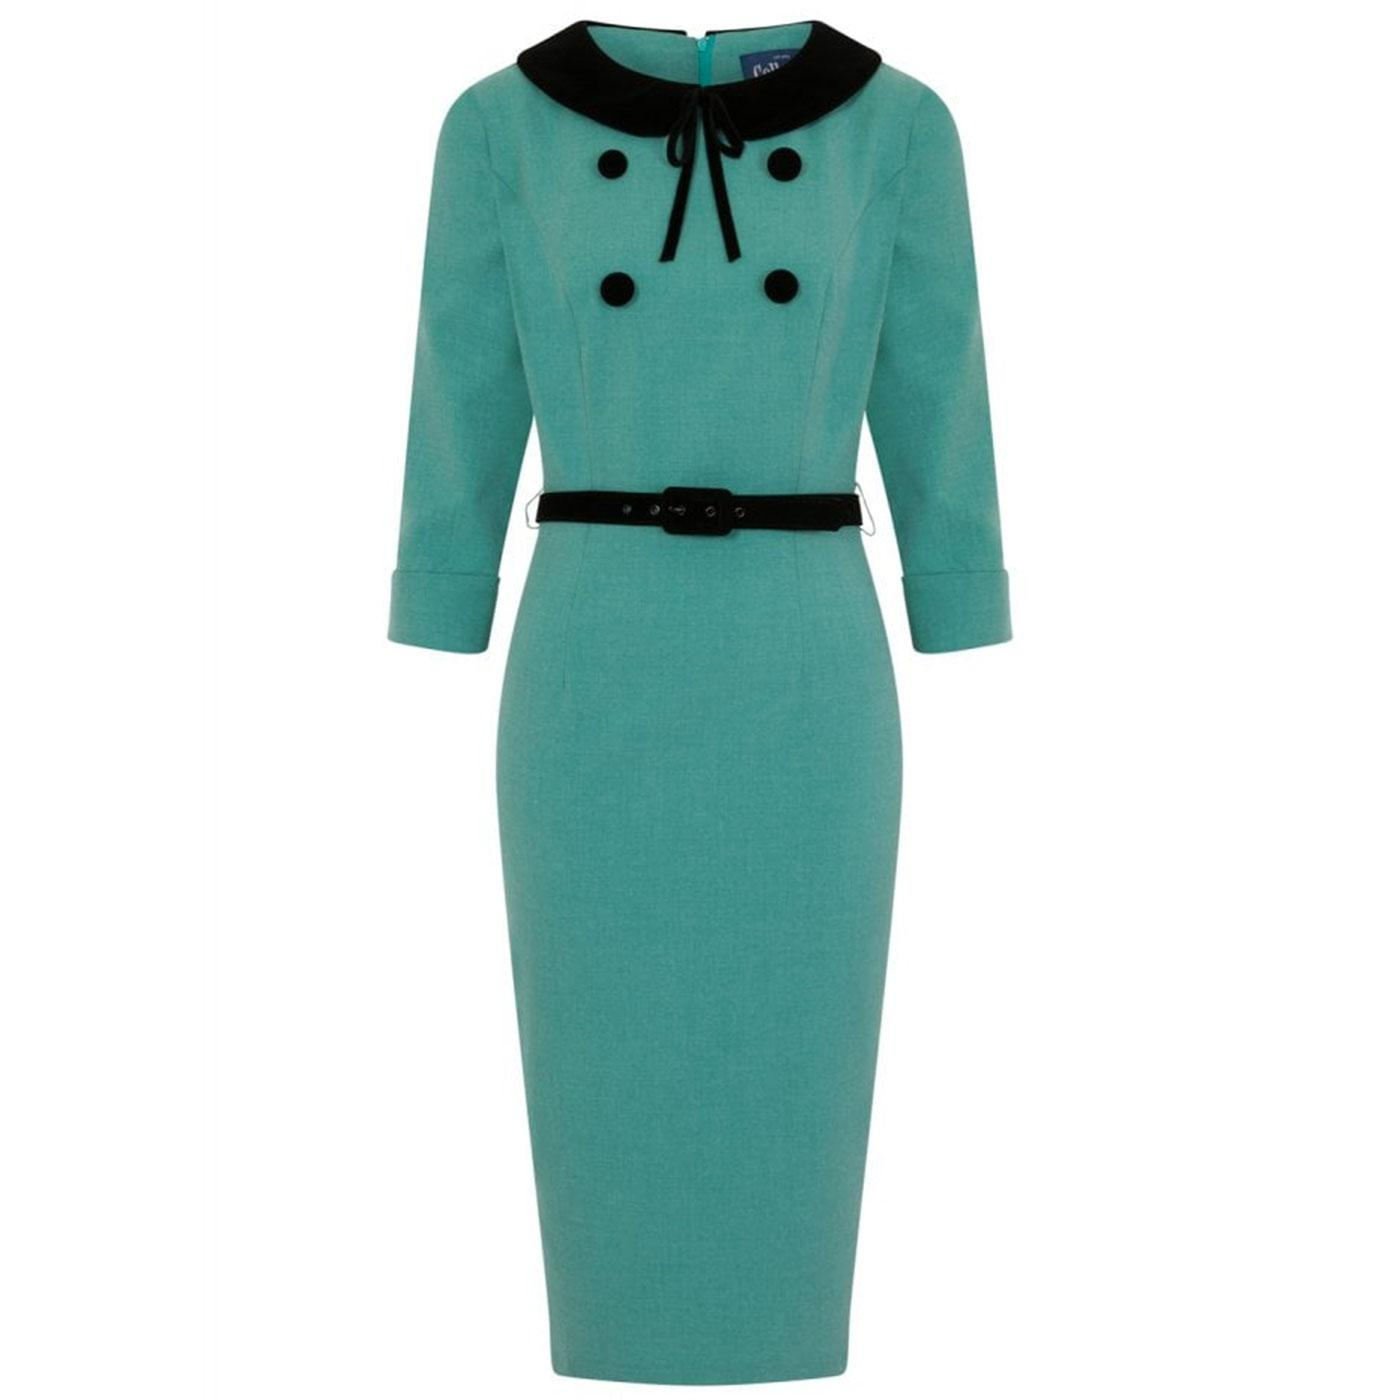 Christine COLLECTIF 50s Vintage Pencil Dress Green